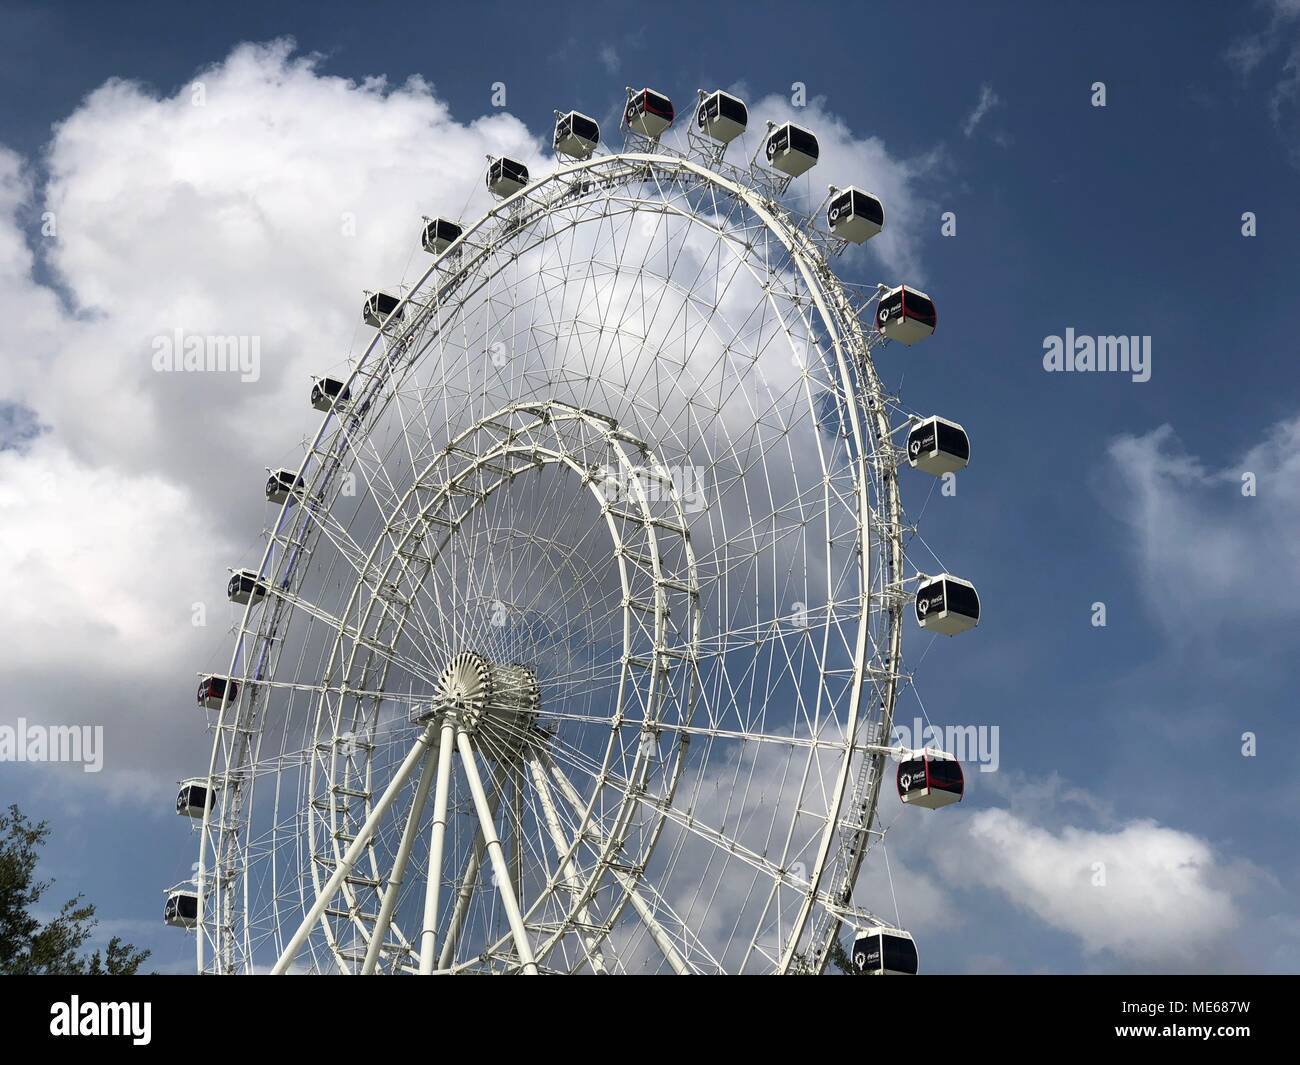 The Orlando Eye, a 400 ft tall giant Ferris wheel and the largest observation wheel on the East Coast of the United States. Located  Orlando, Florida. Stock Photo